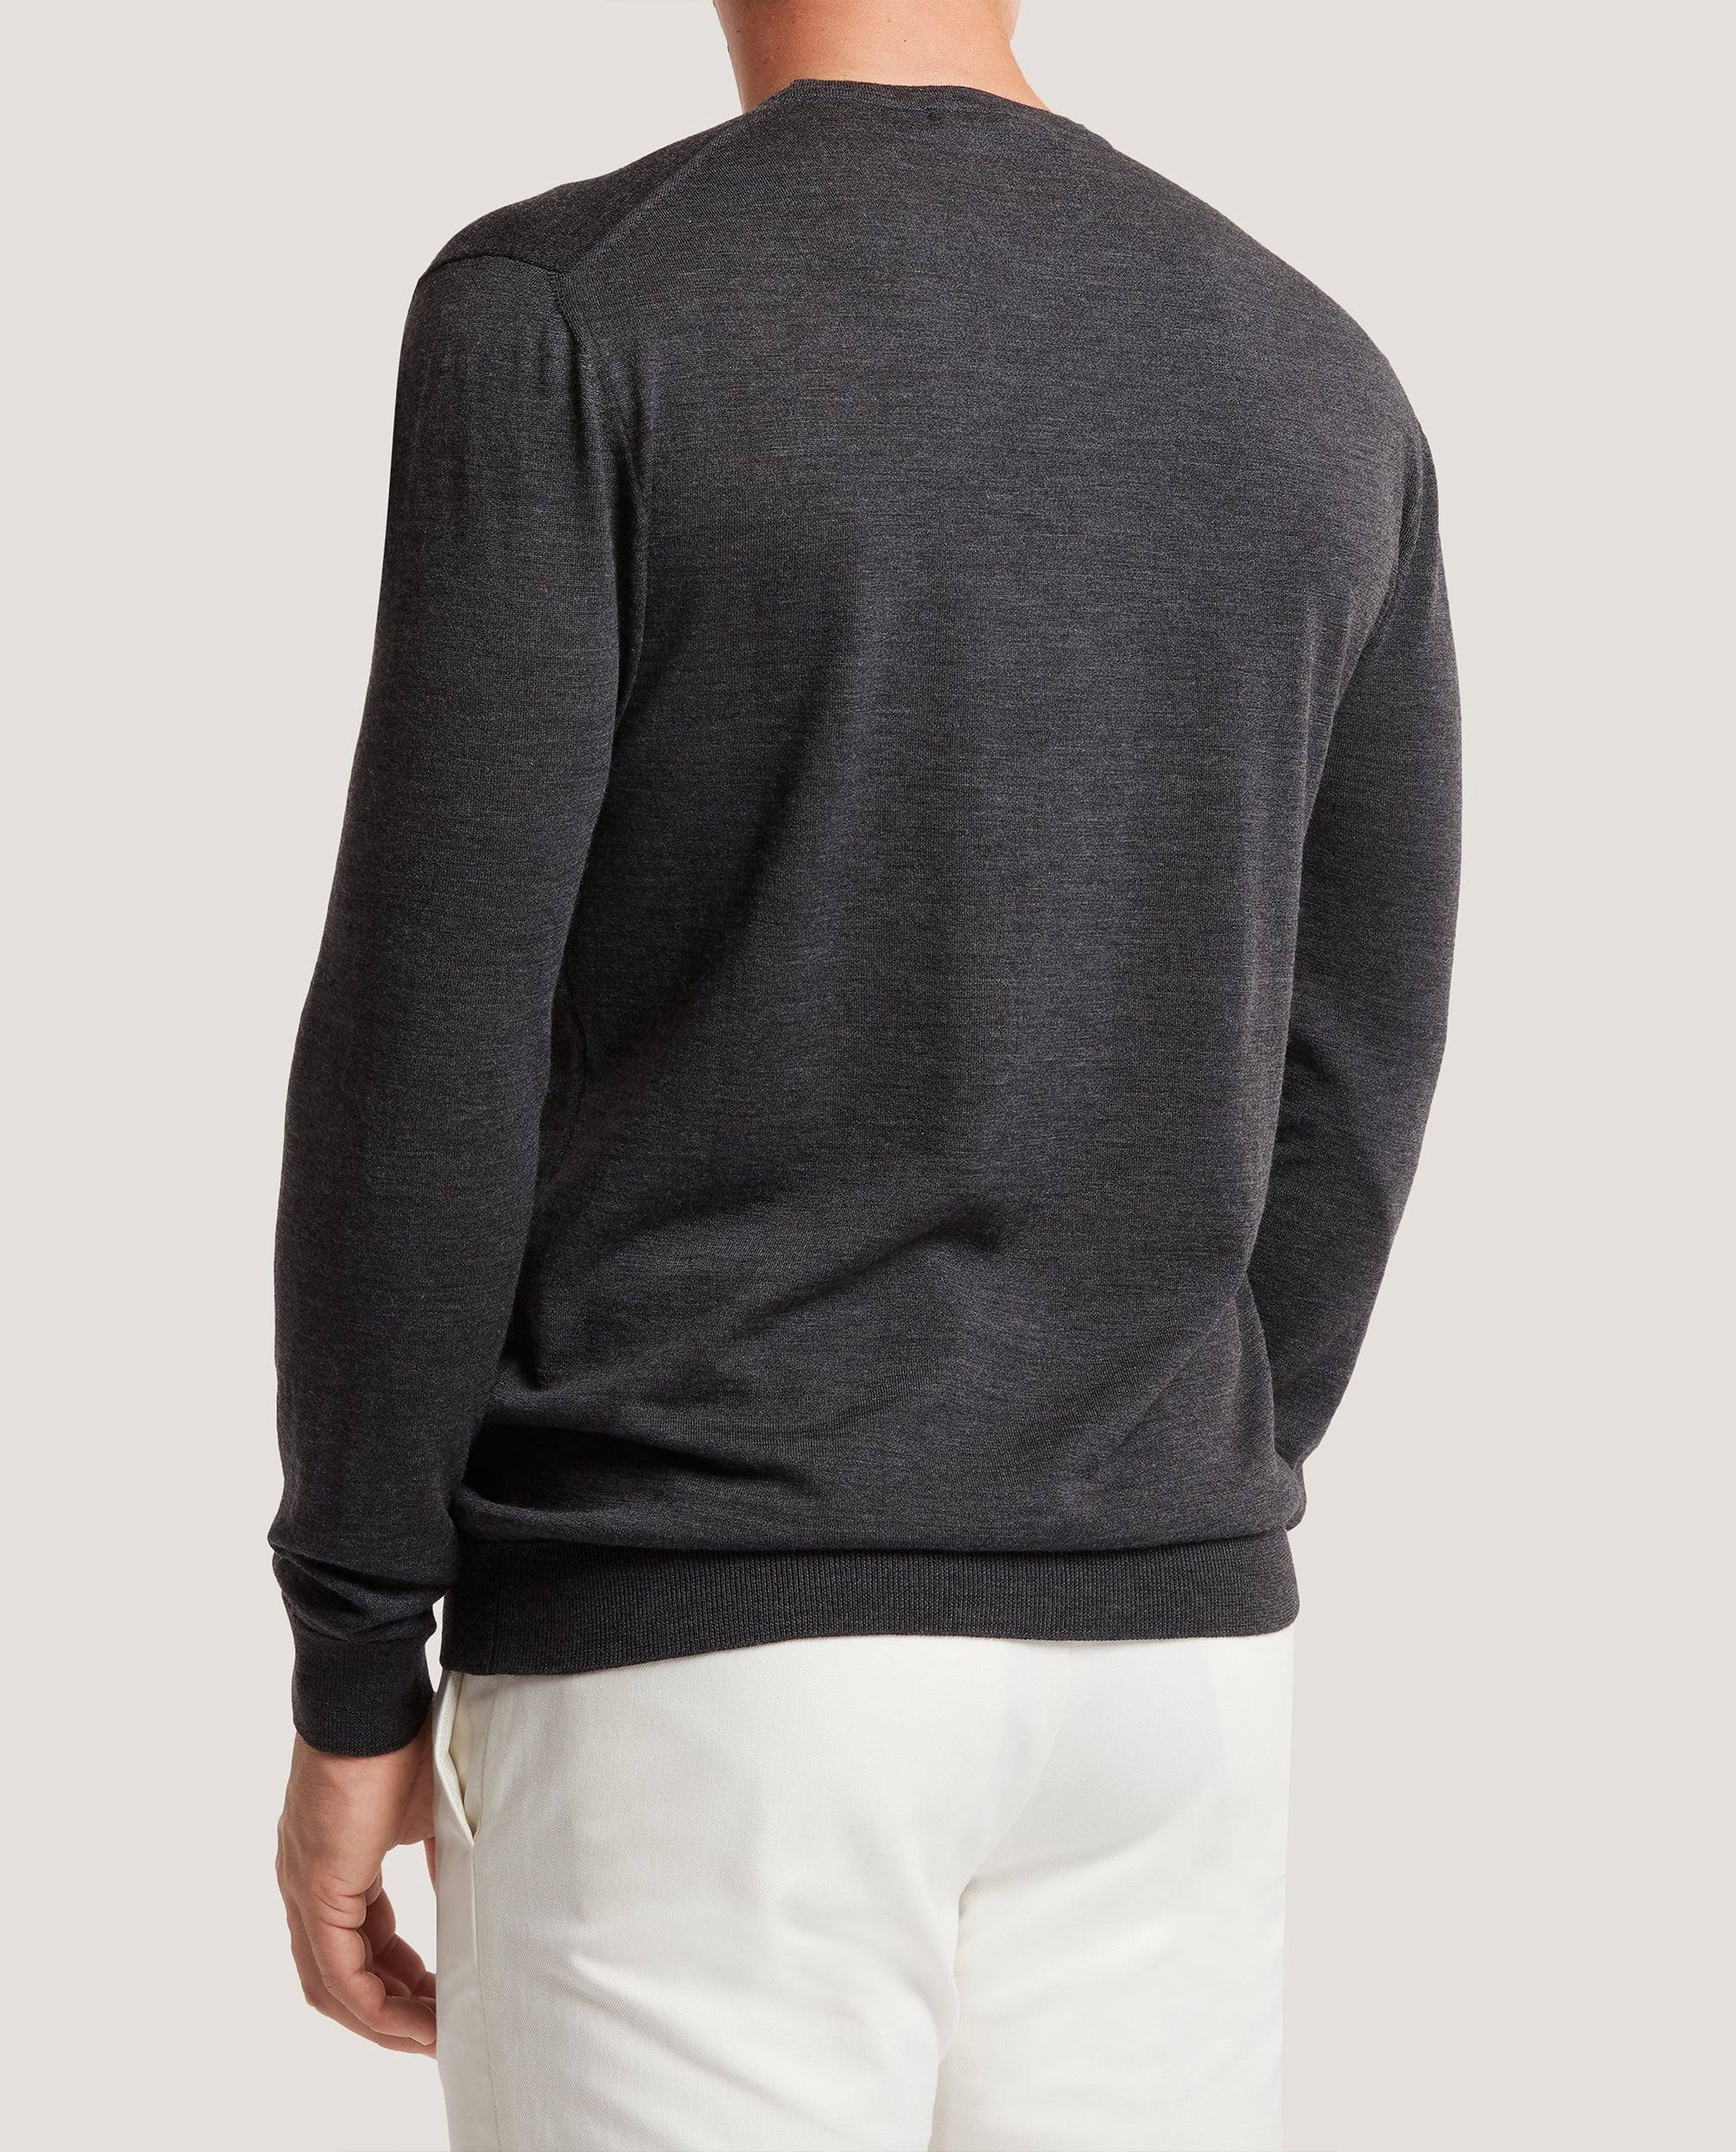 PAOL Merino wool sweater | Dark Grey